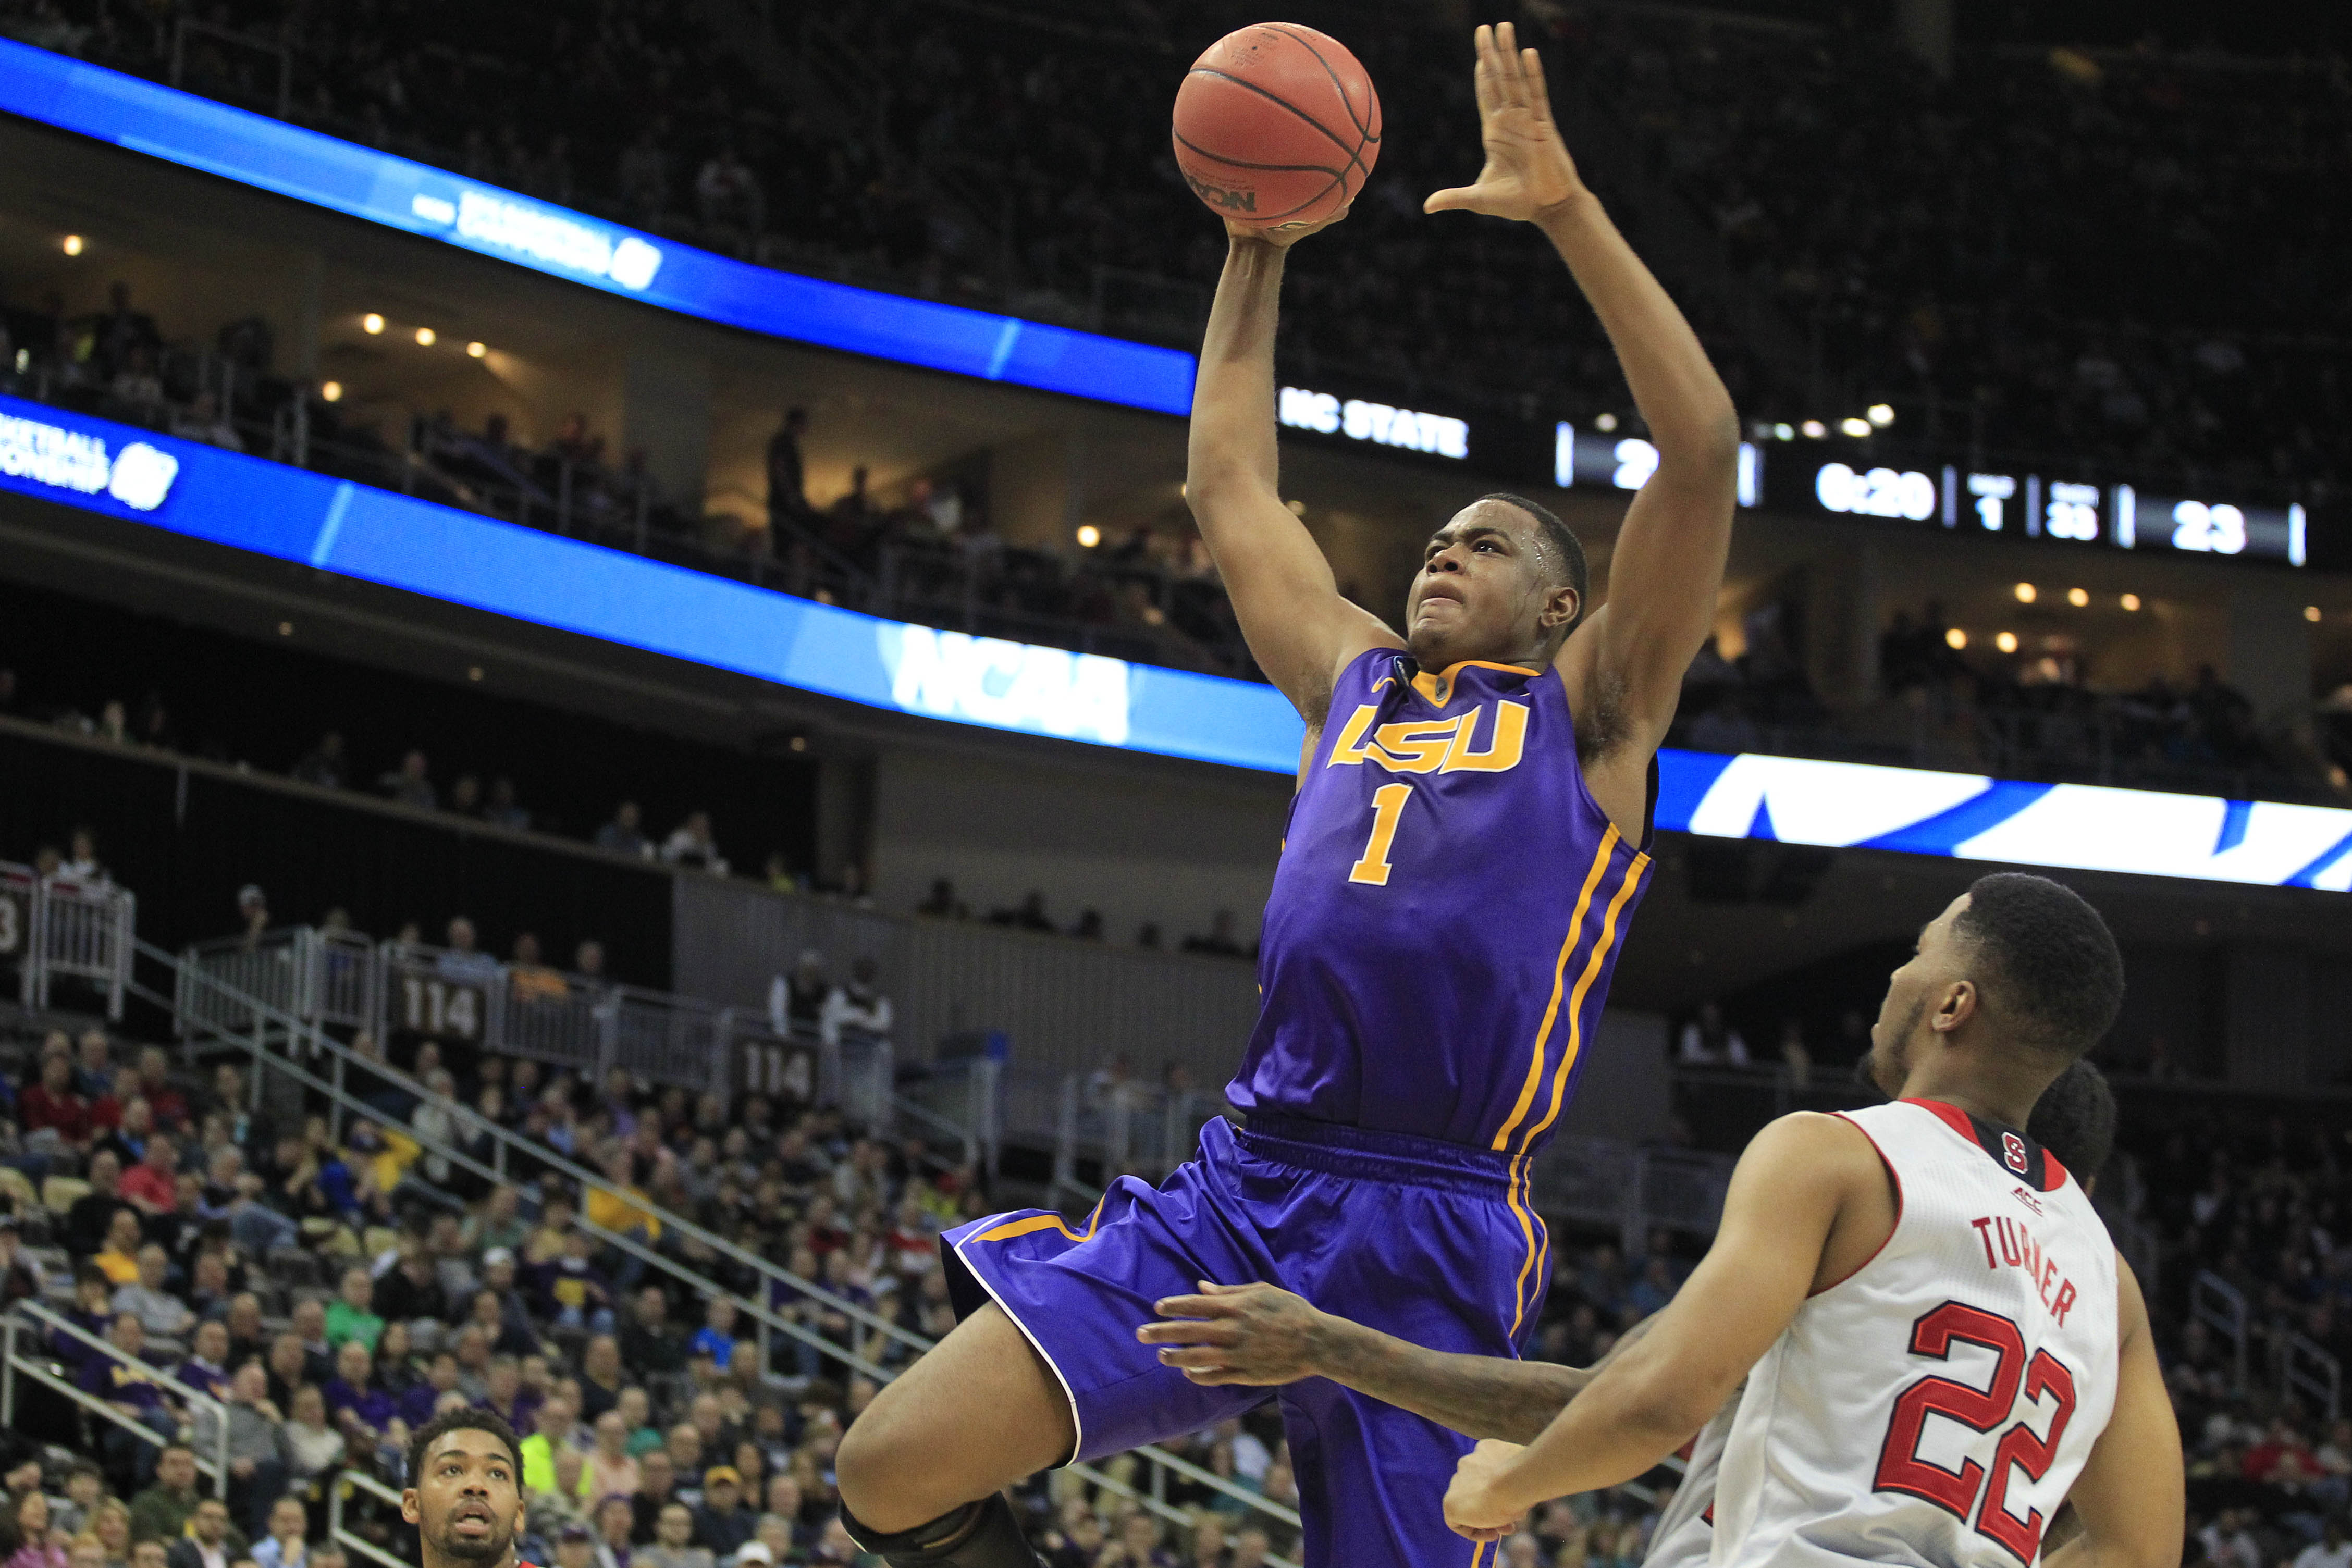 Jarell Martin was selected on Thursday by the Memphis Grizzlies with the 25th overall pick.